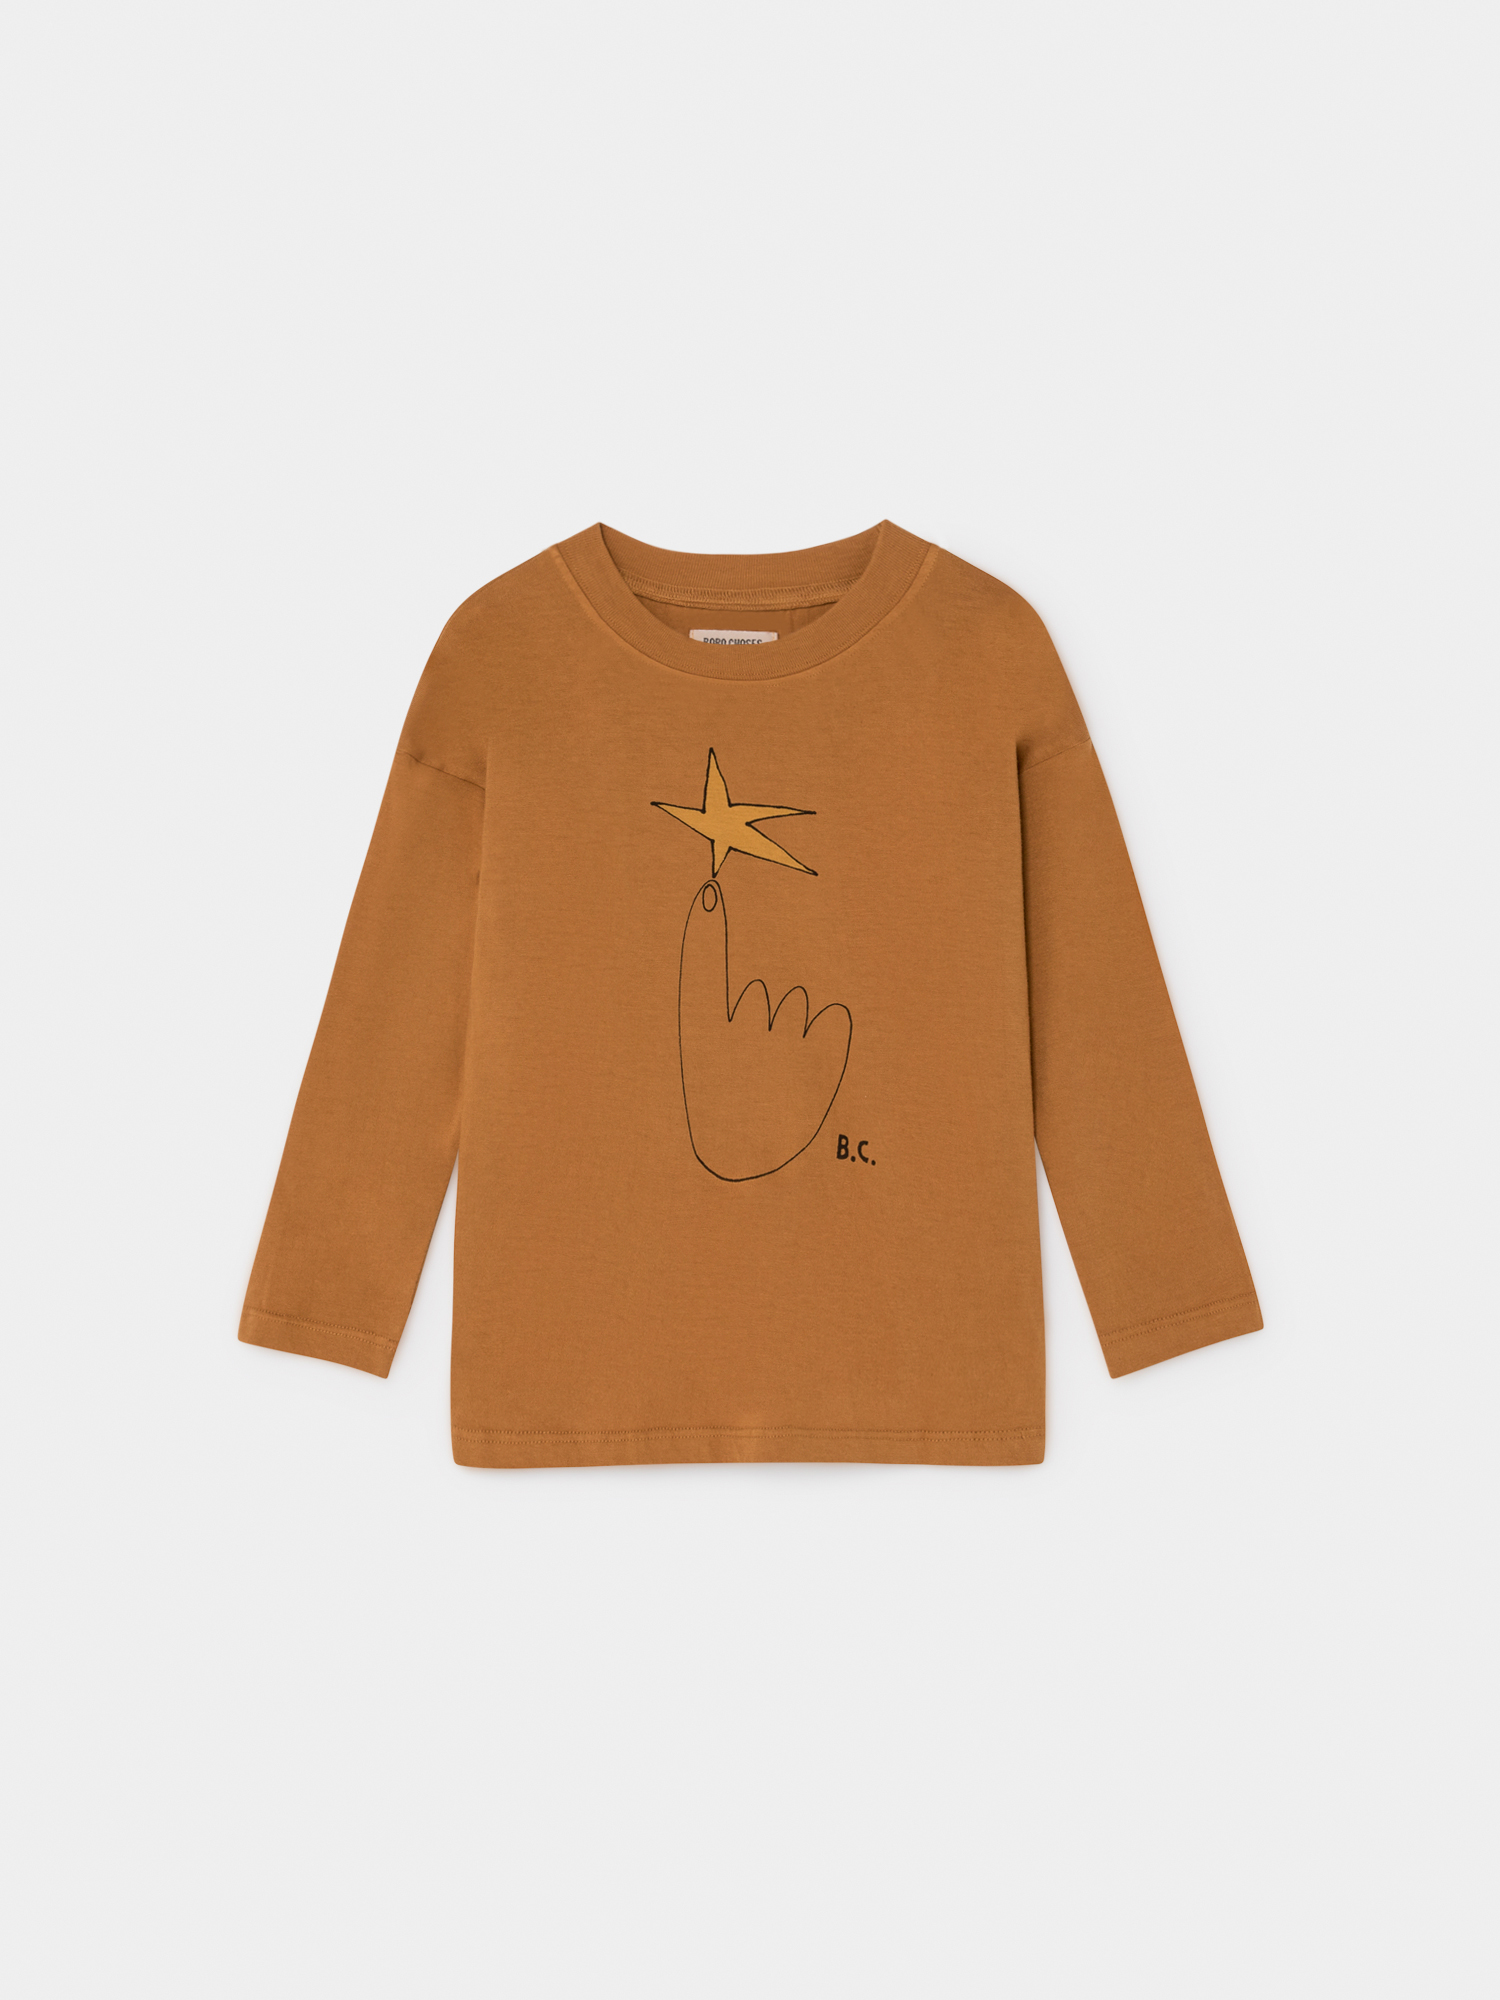 【BOBOCHOSES】219011 THE NORTHSTAR LONG SLEEVE T-SHIRT